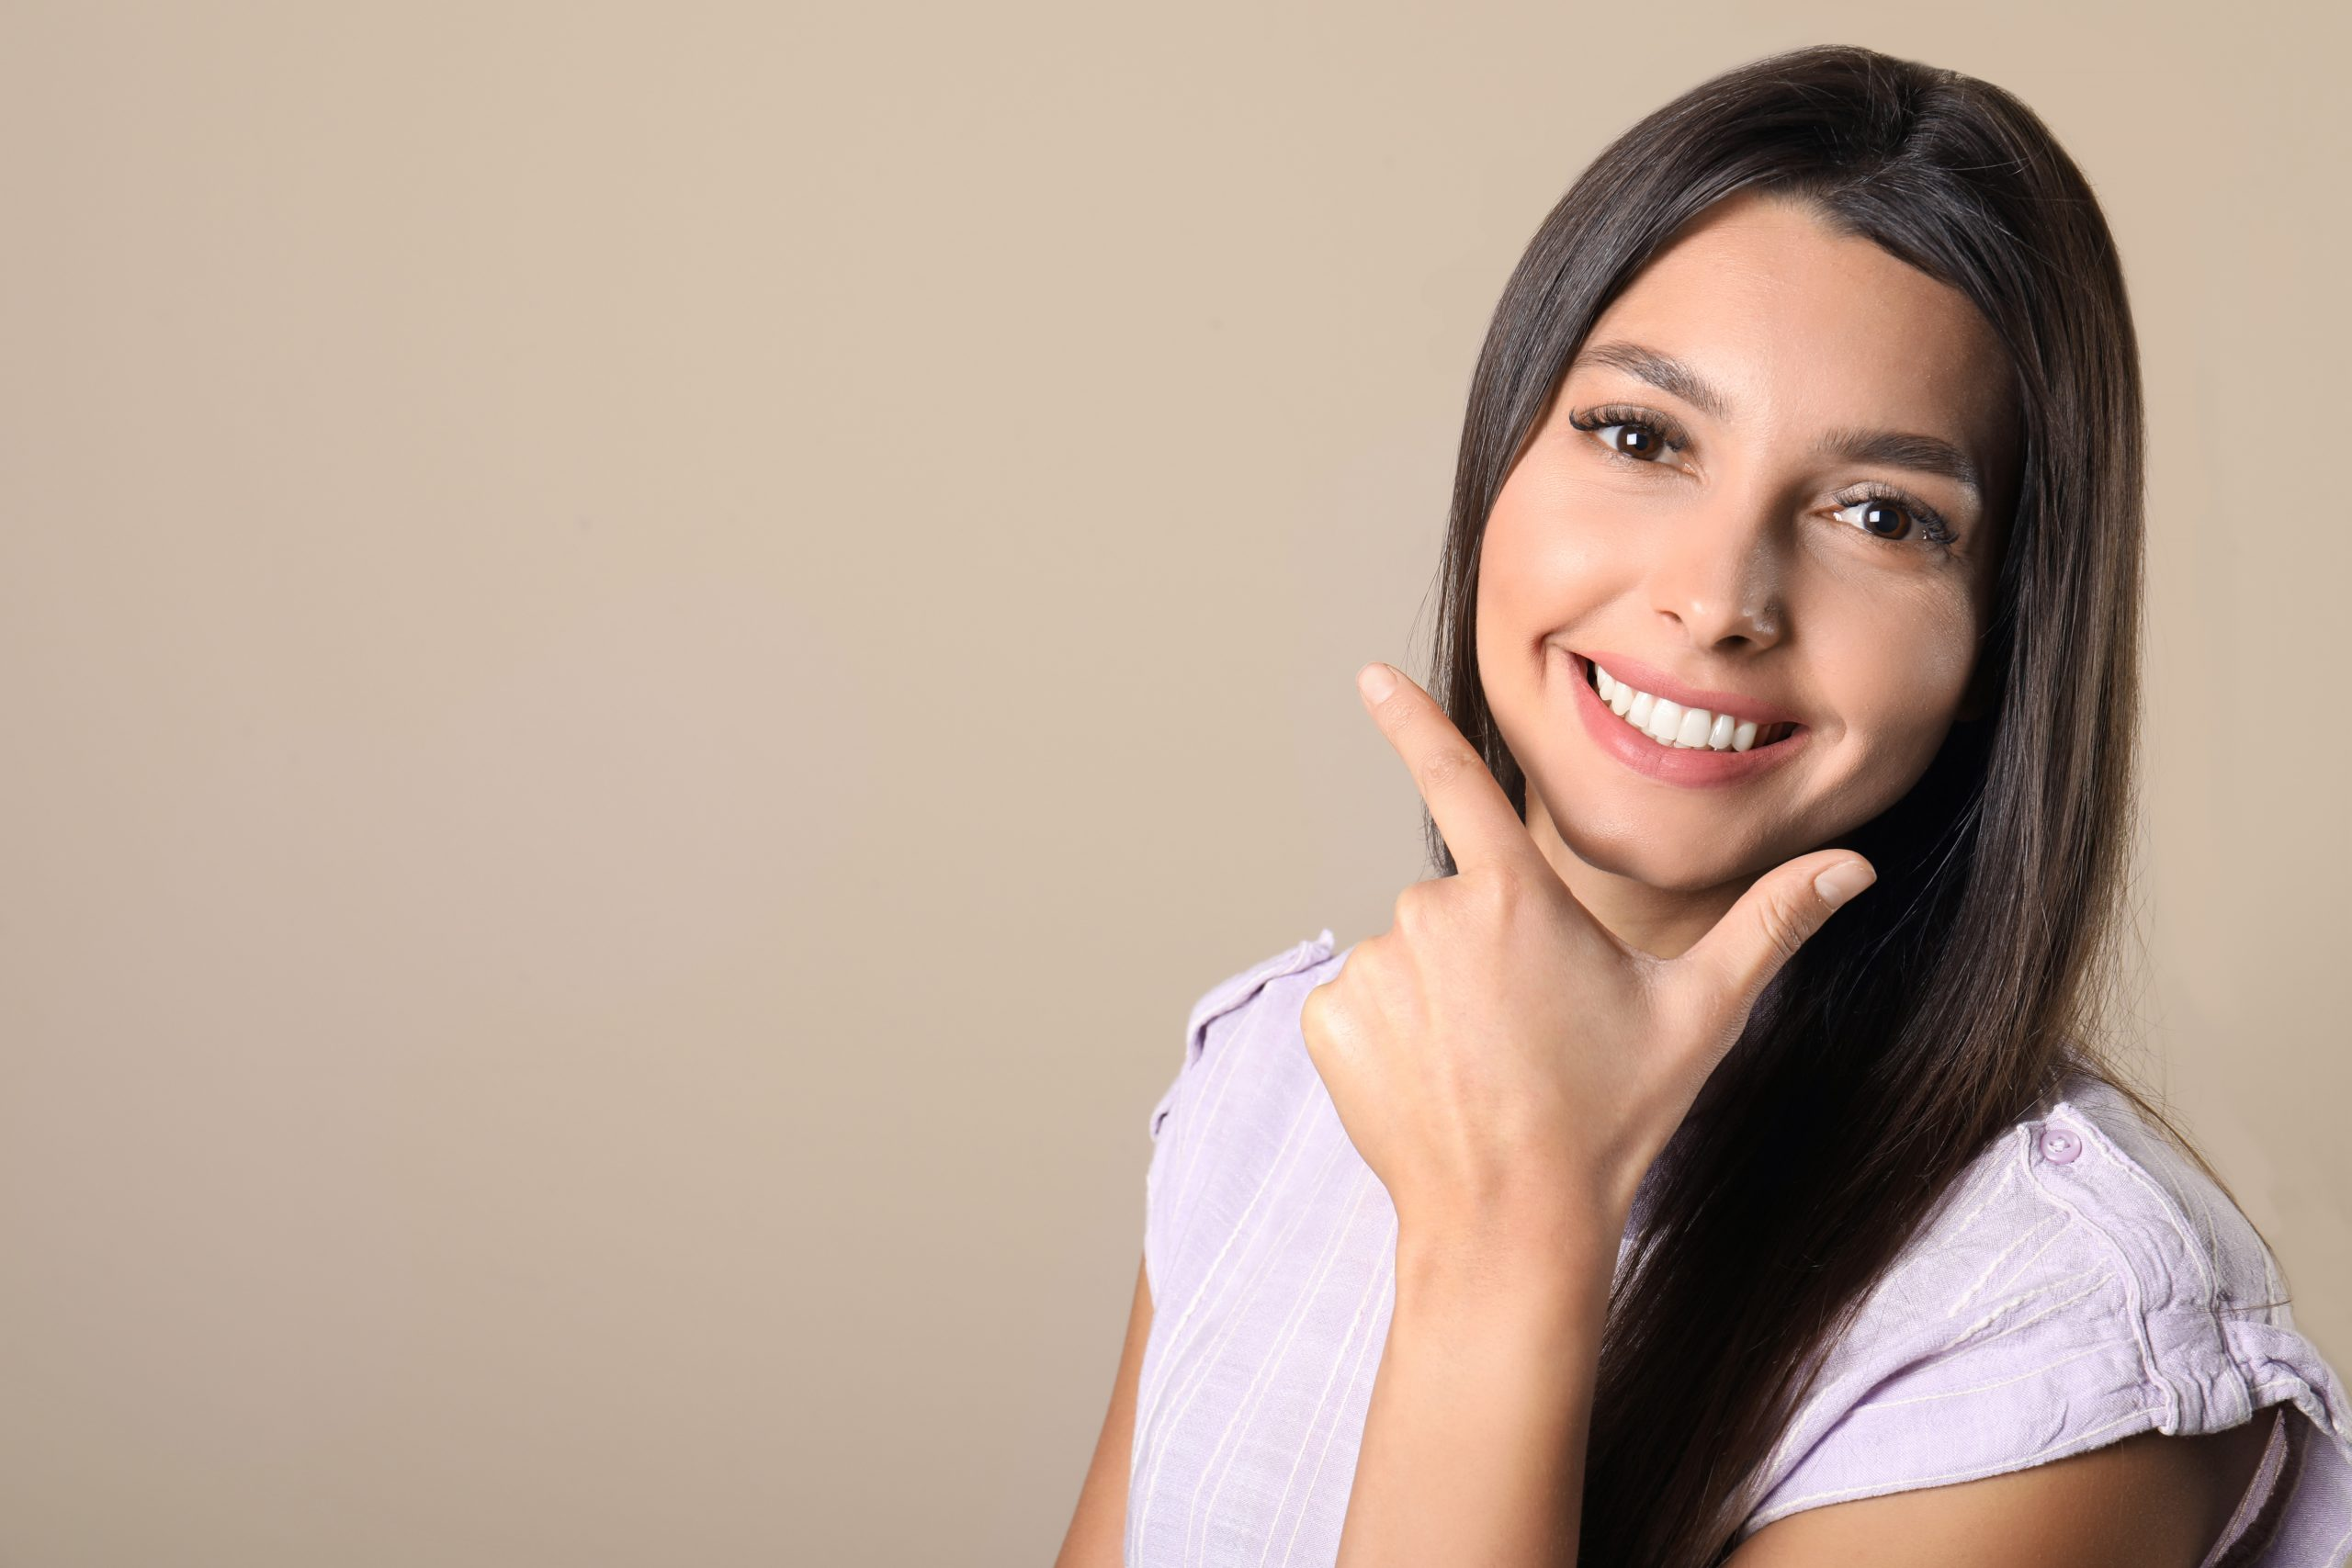 Young woman with healthy teeth on color background. Space for text